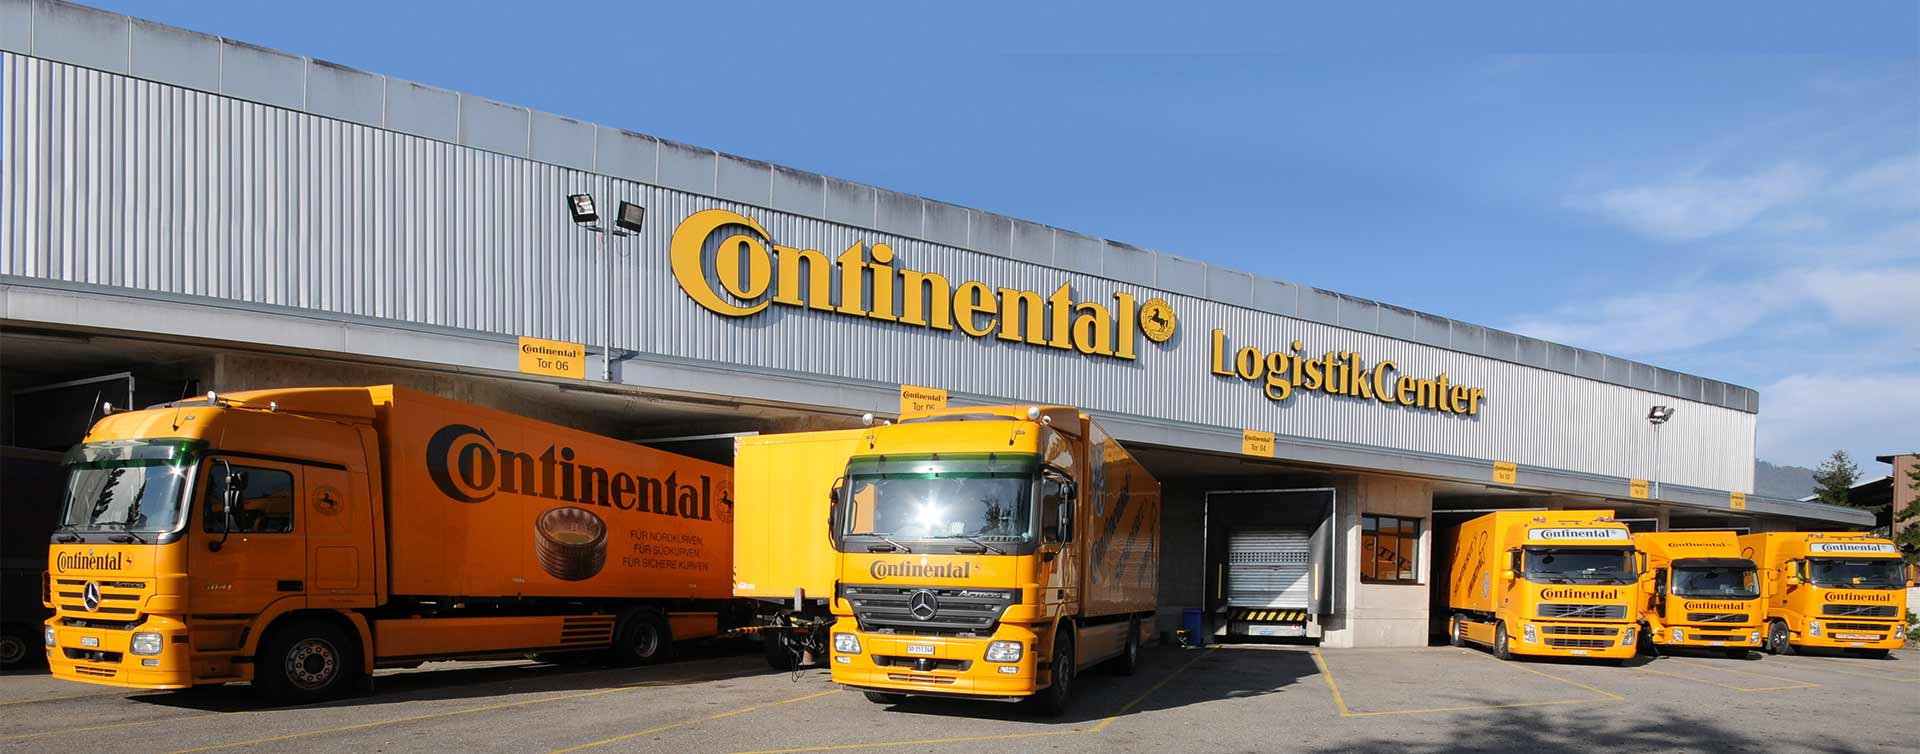 Global tyre distribution from over 70 logistics centres